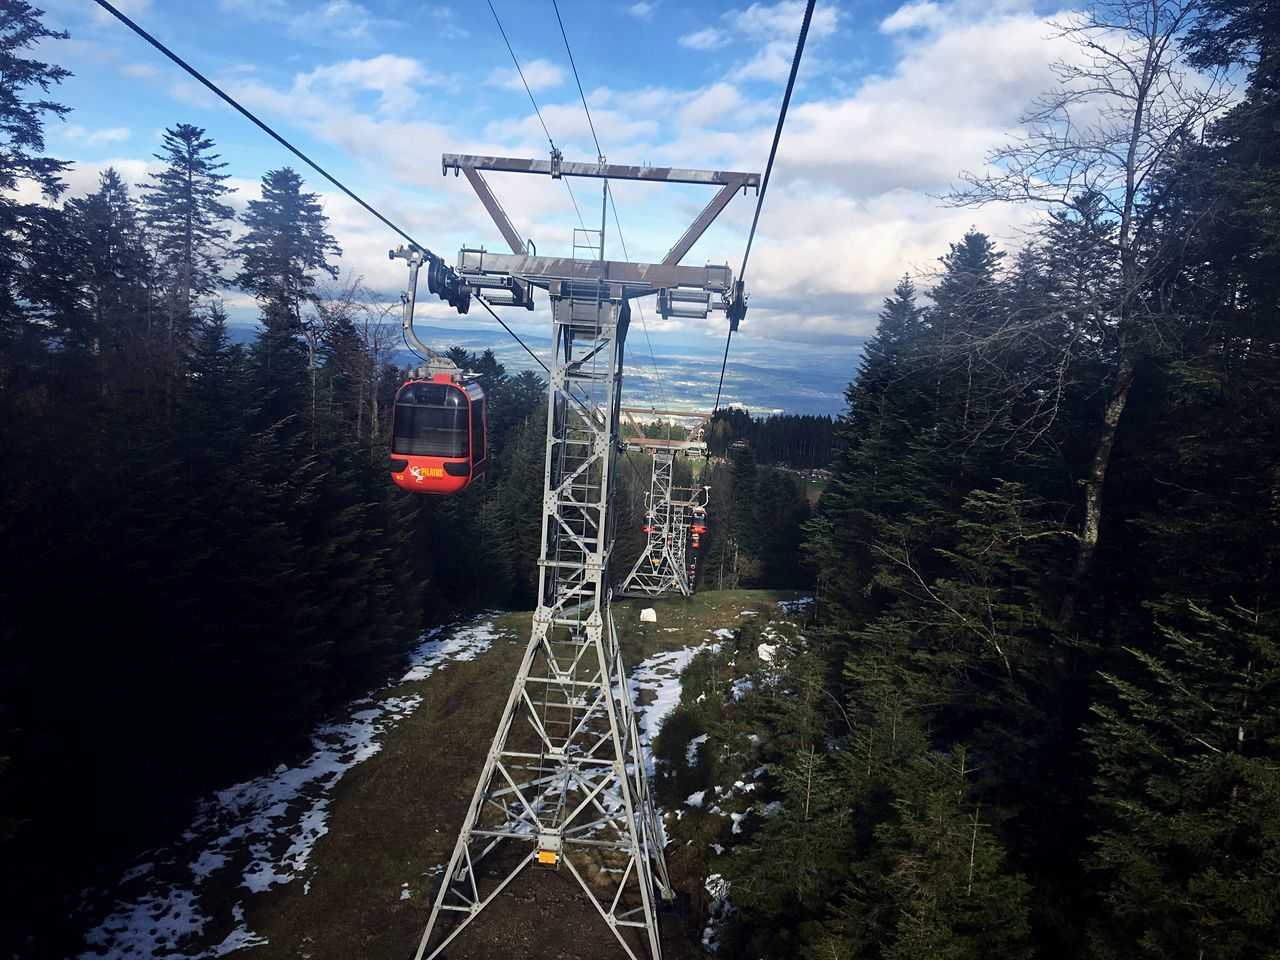 Siwss Switzerland Pilatus Sky Overhead Cable Car Nature Outdoors Day VSCO Cam Enjoying Life Random Relaxing Nature Photography Winter Blue Sky Tumblr Blue Spam Follow Likeforlike Hi!